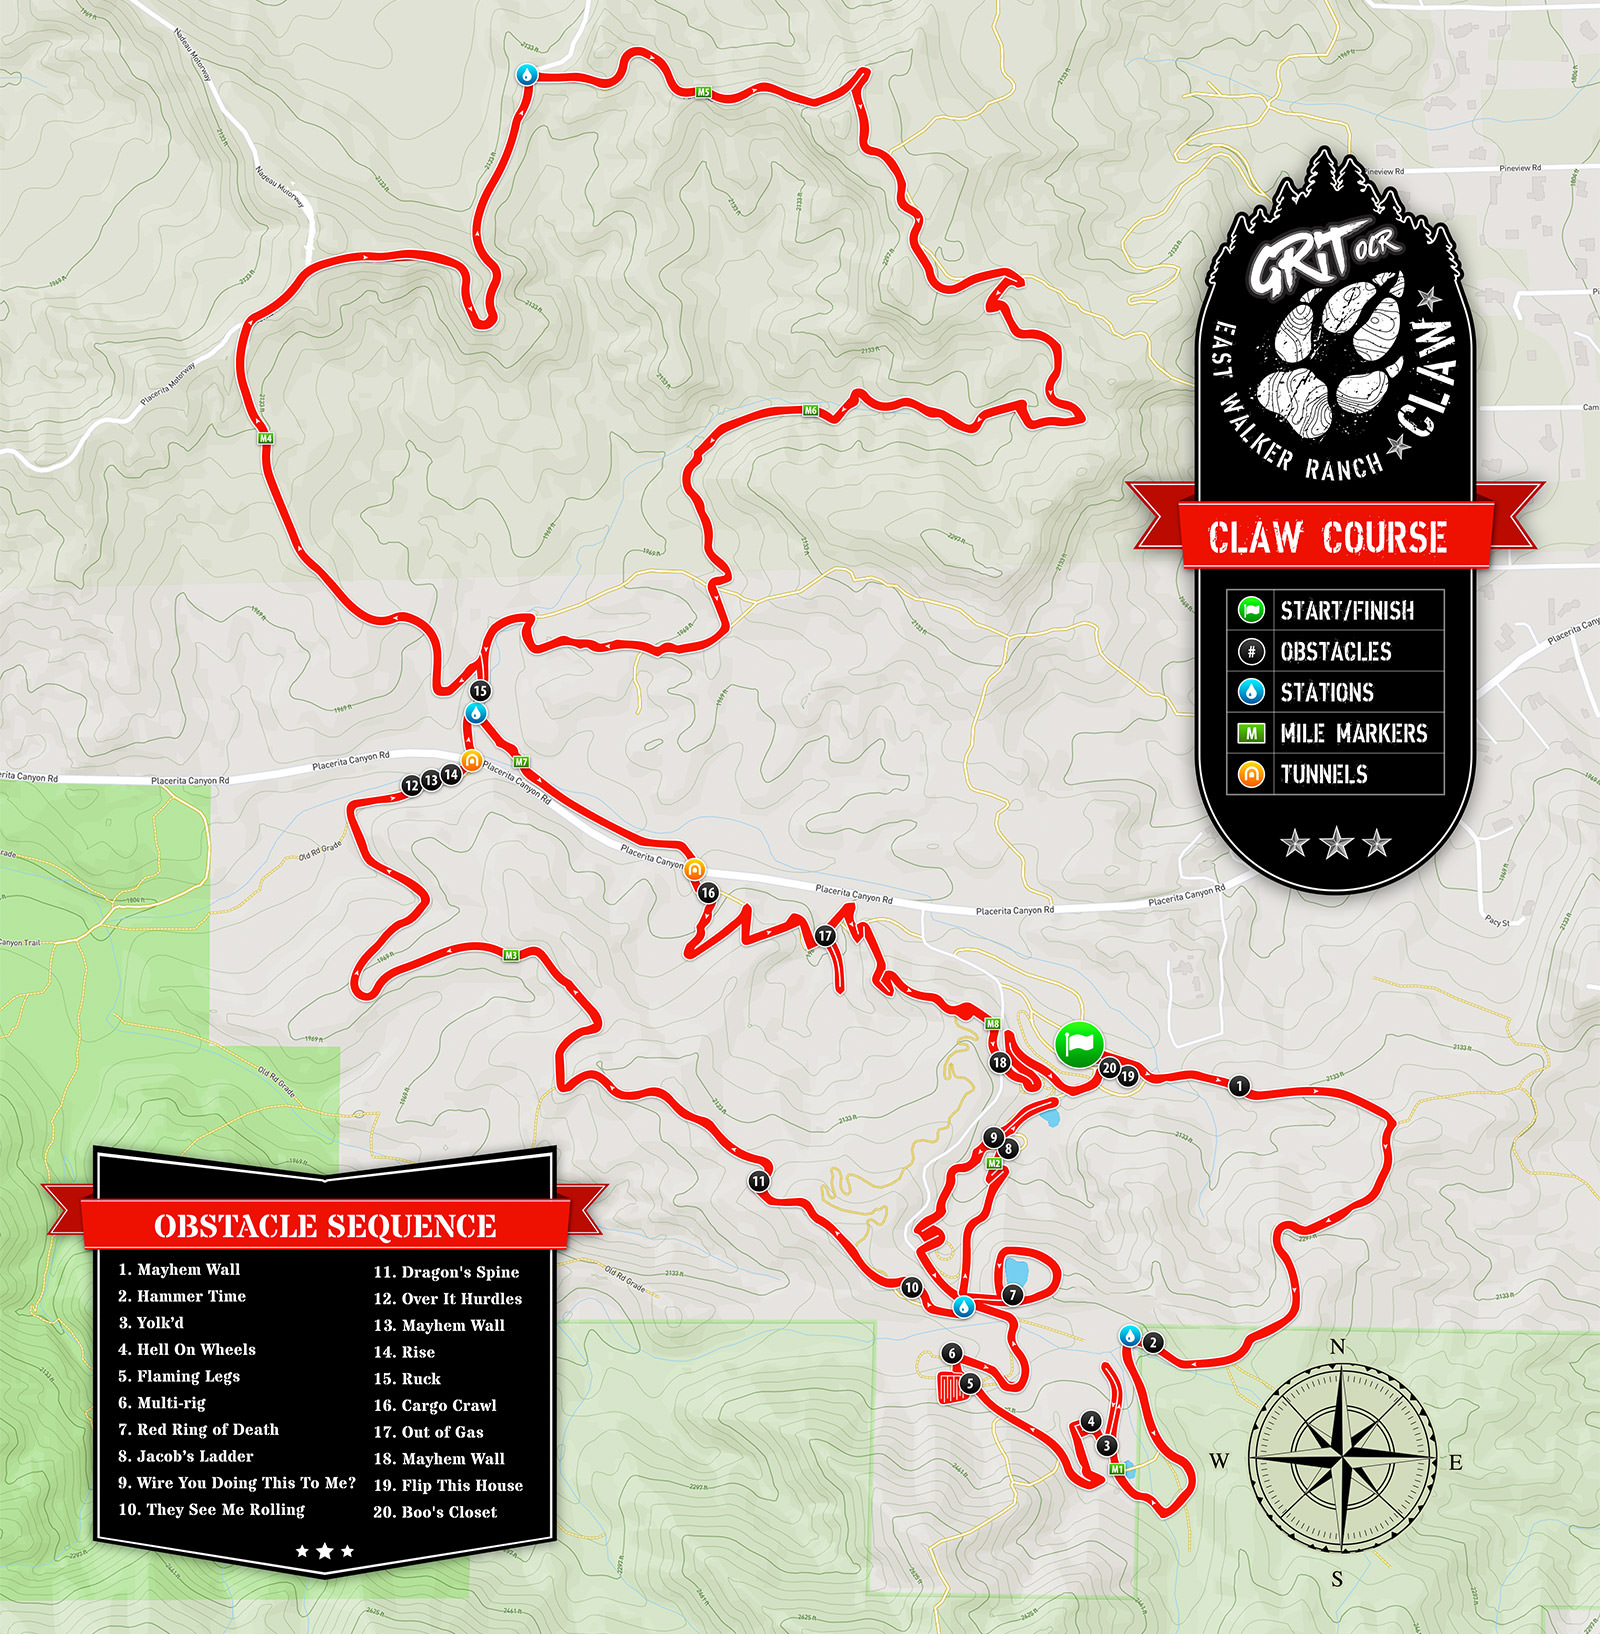 2021 Grit OCR Claw Course Map